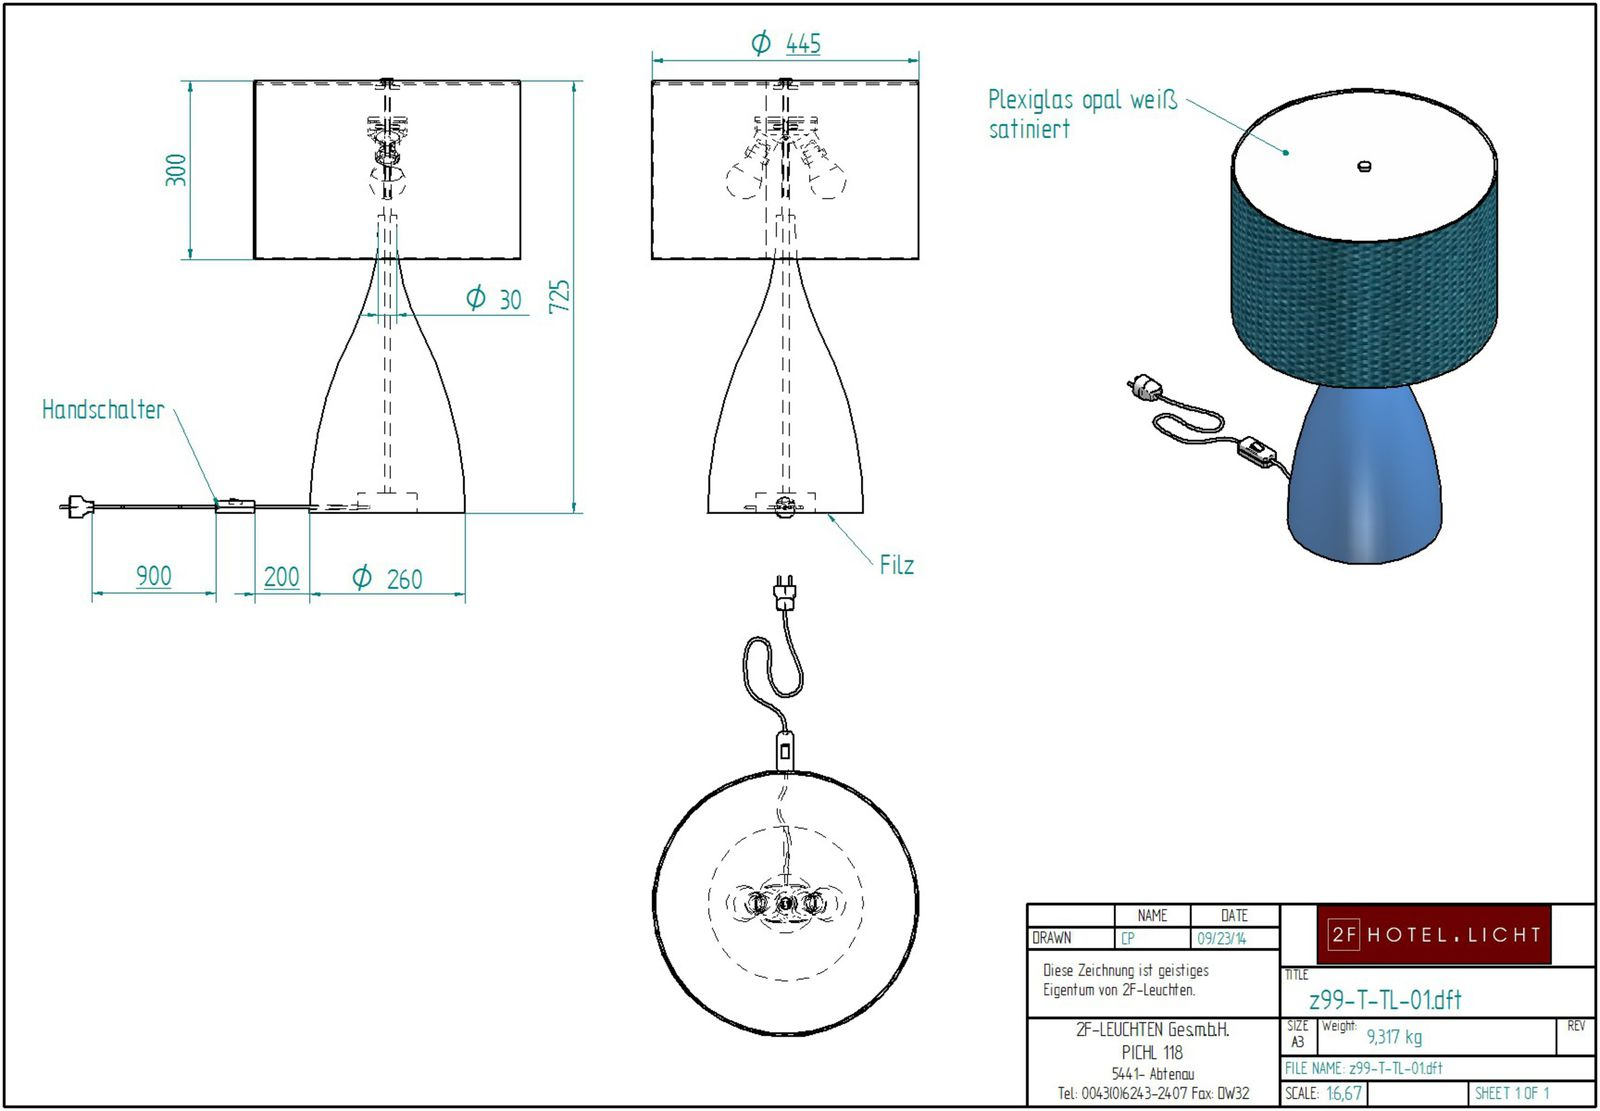 Table lamp, L= Ø450mm, H=725mm, surface metal: RAL Design 2105040, Material: wood, techn. Data: 2xE27, 18W, 230V, cable: white